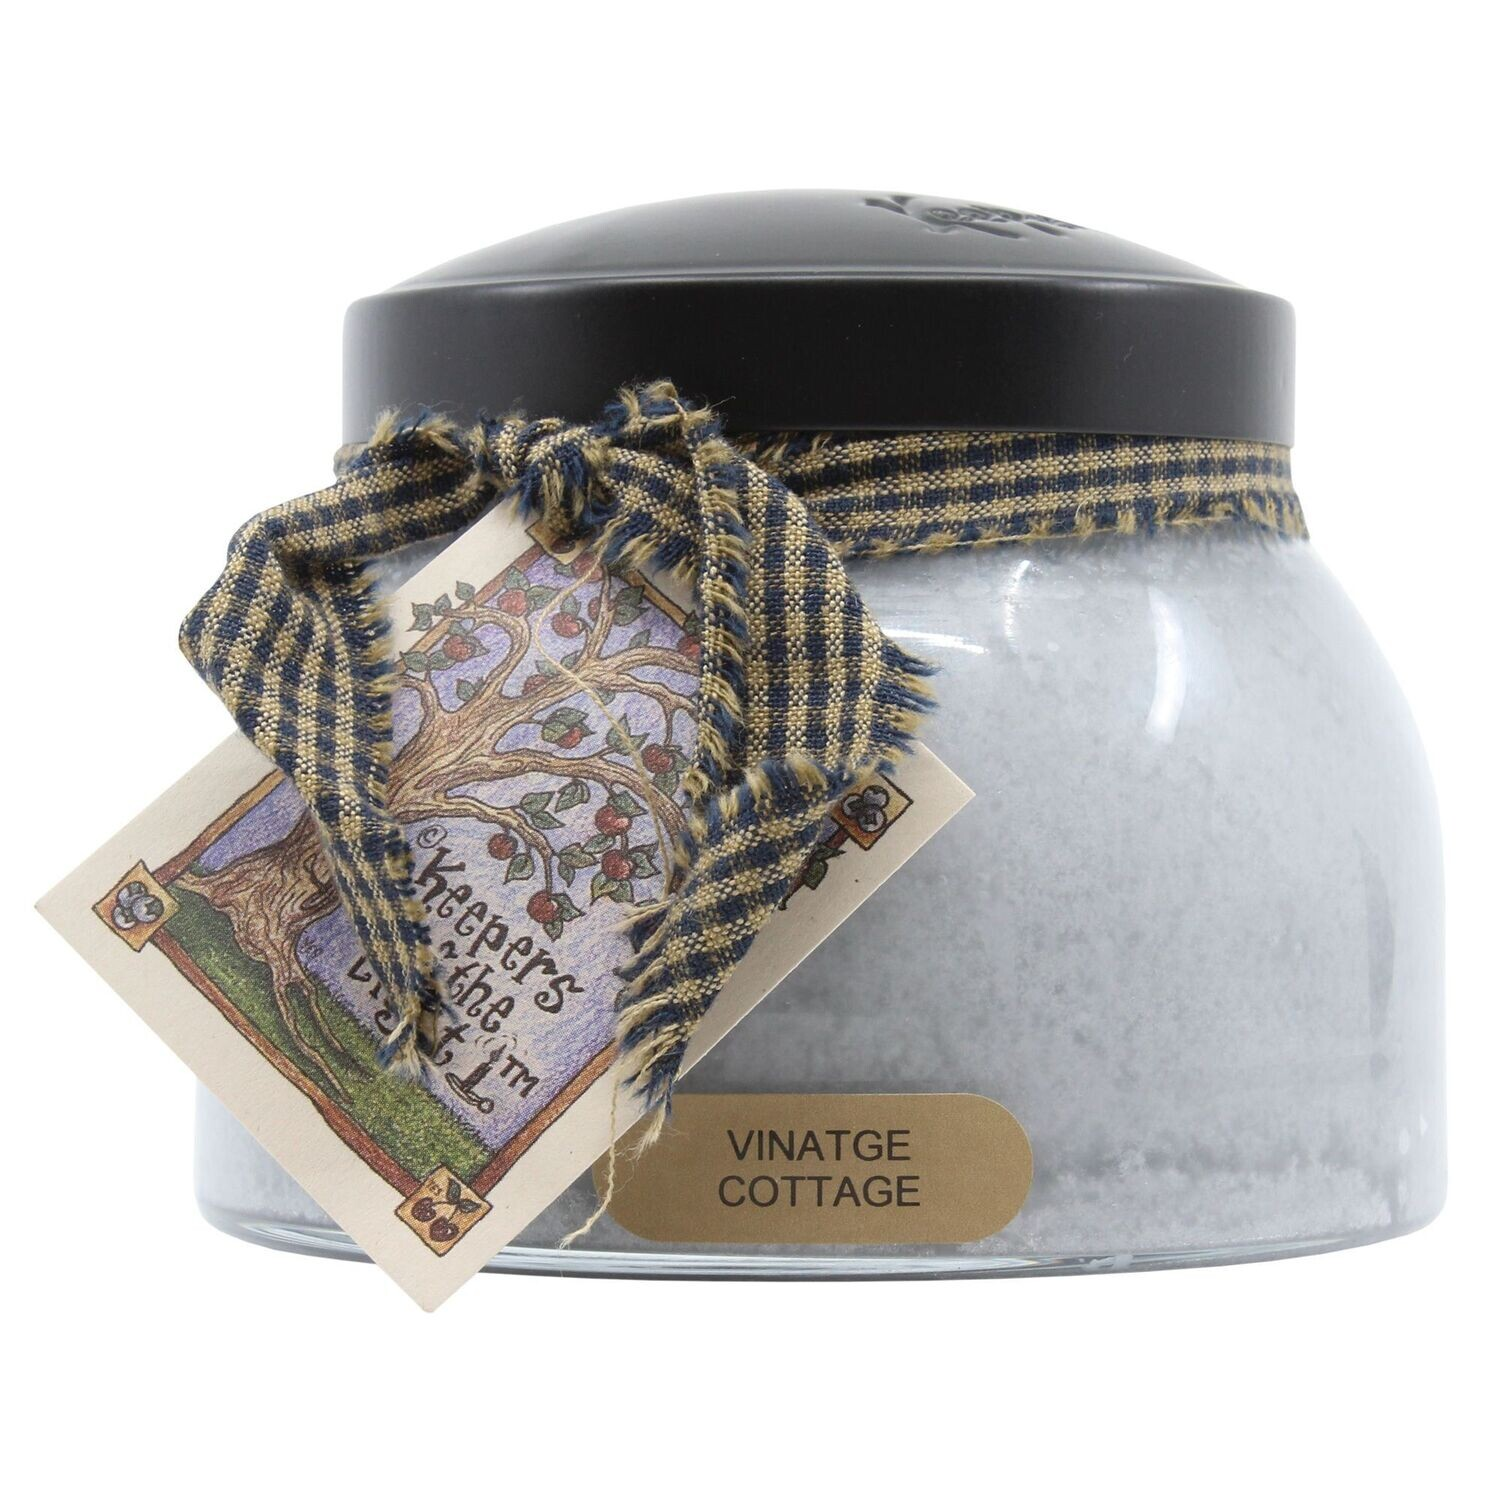 Vintage Cottage - Mama Jar - 22 oz - Double Wick - Keepers of the Light Candle